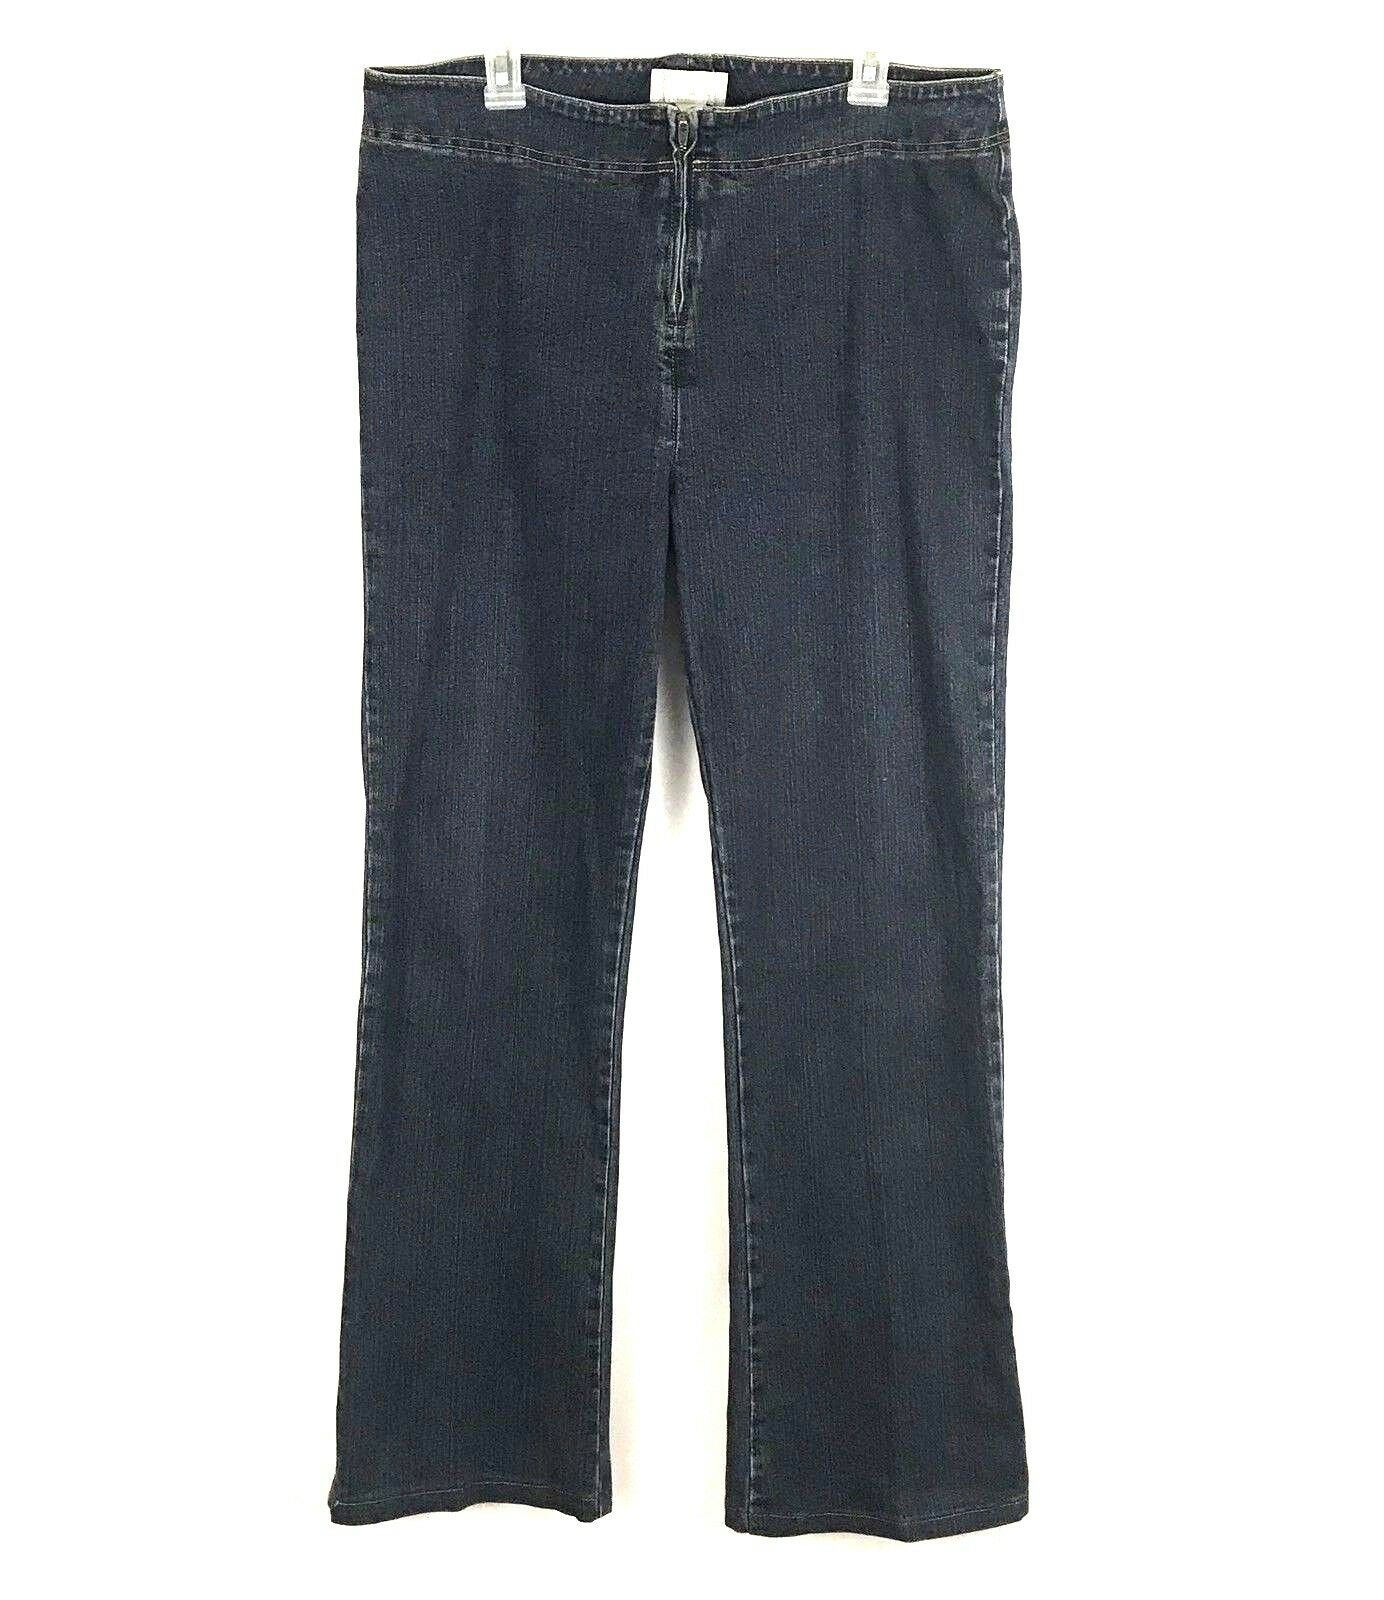 Soft Surroundings Womens Jeans Size Large Tall Dark Wash Zip Up Stretch Denim